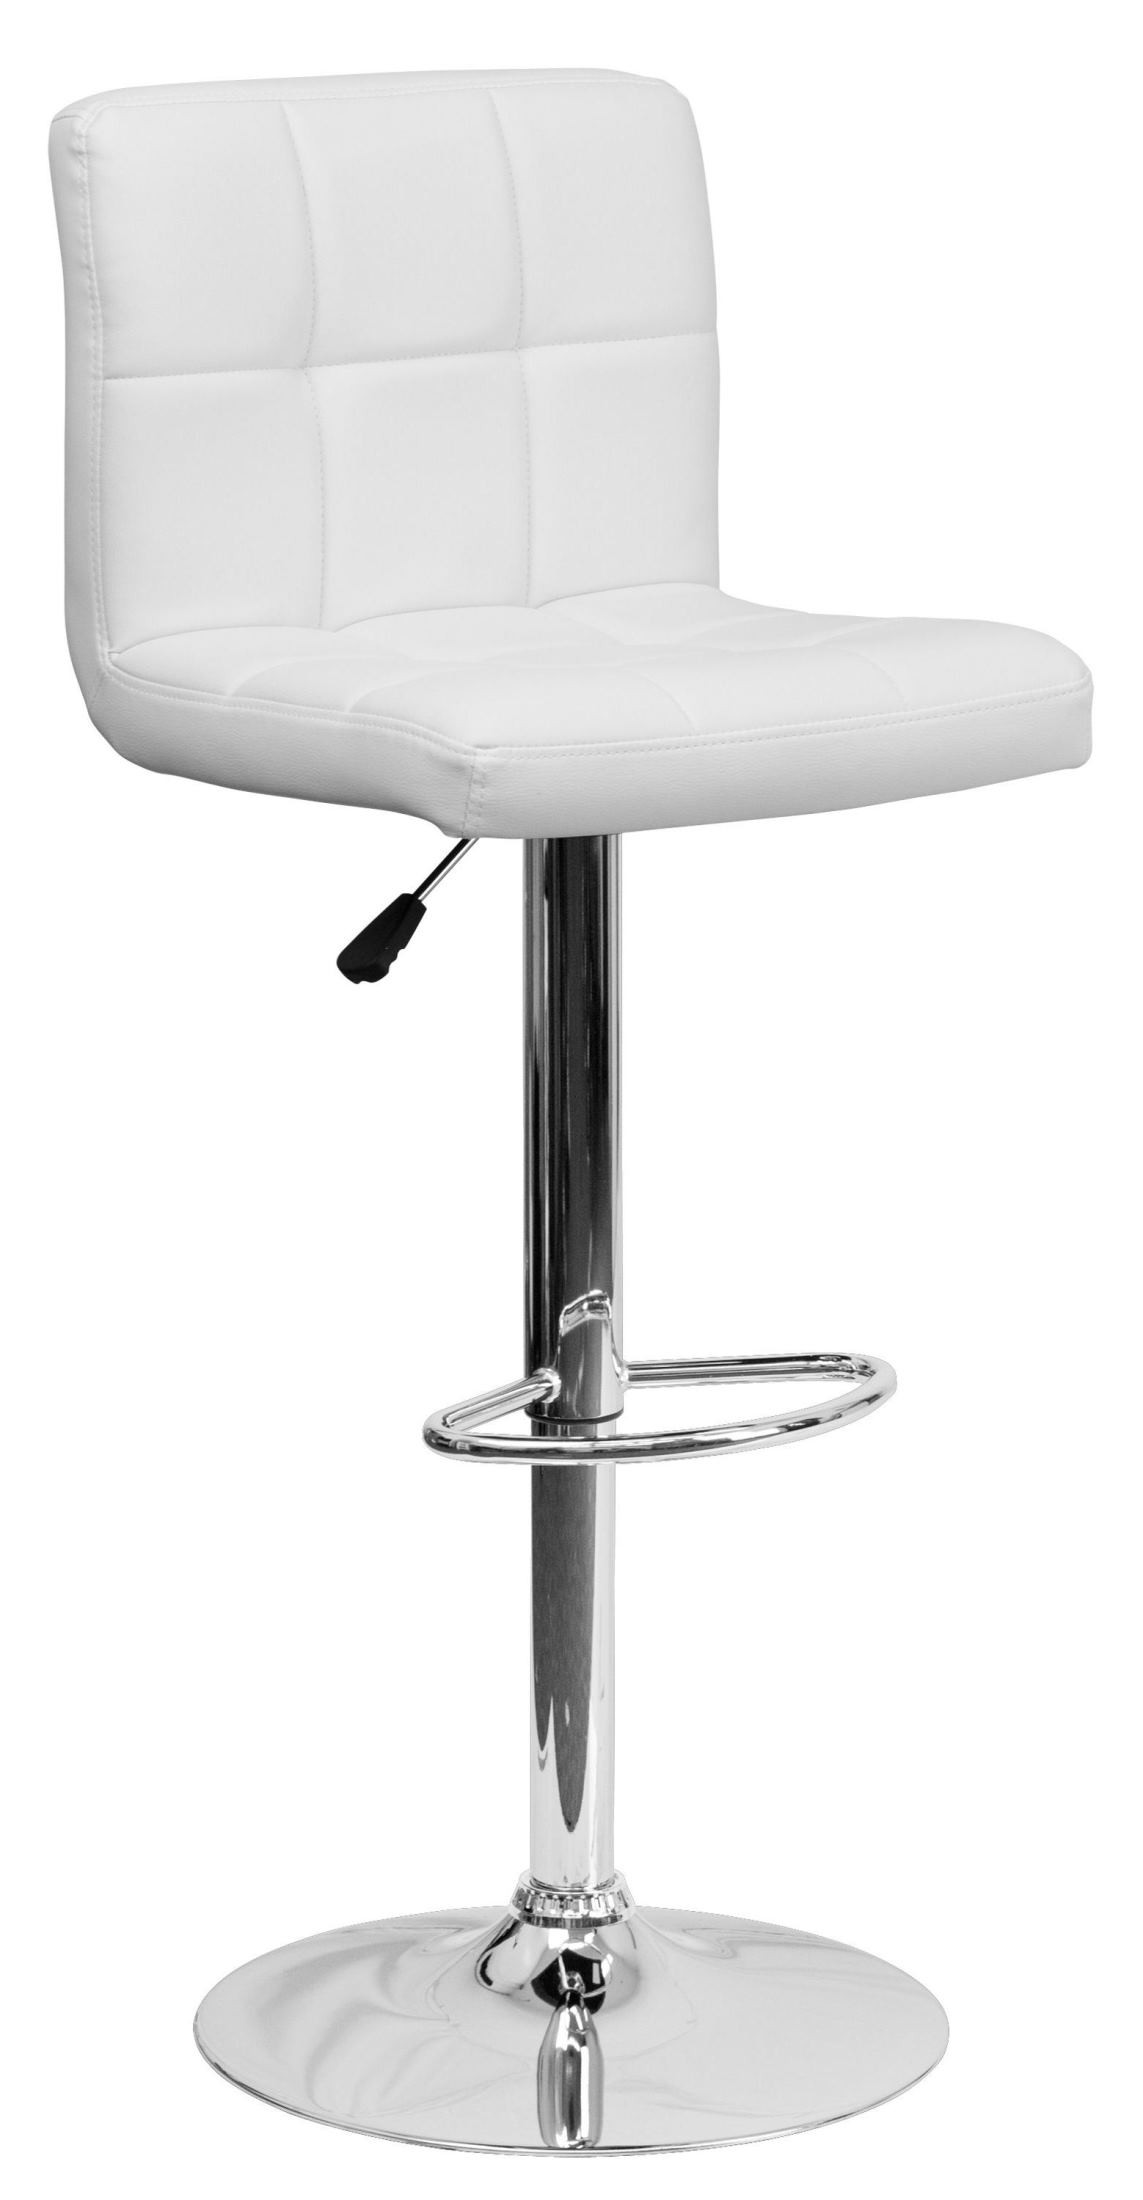 White Quilted Adjustable Height Bar Stool from Renegade  : ds 810 mod wh gg from colemanfurniture.com size 1143 x 2200 jpeg 118kB